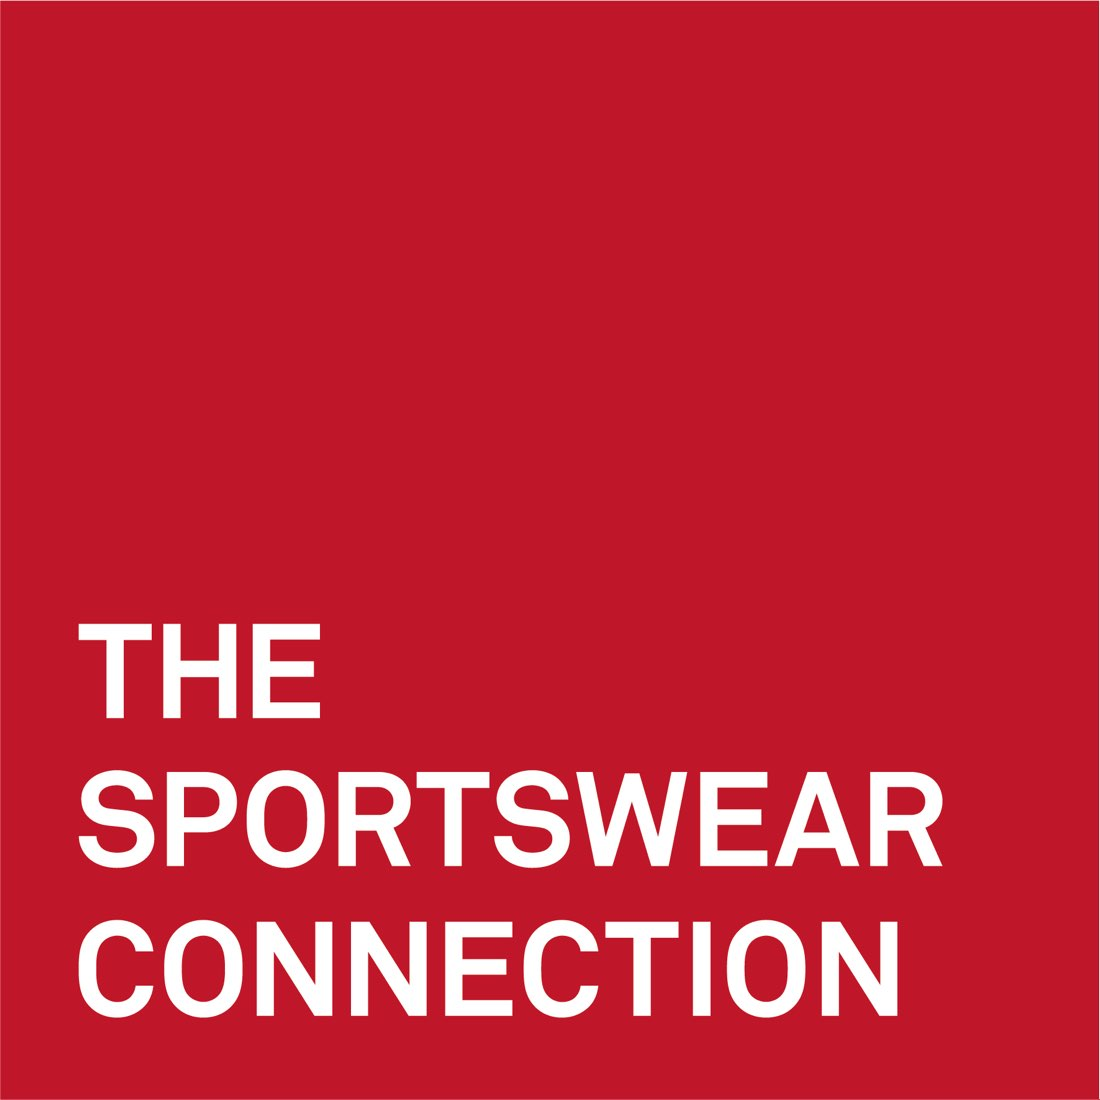 Sportswear Connection